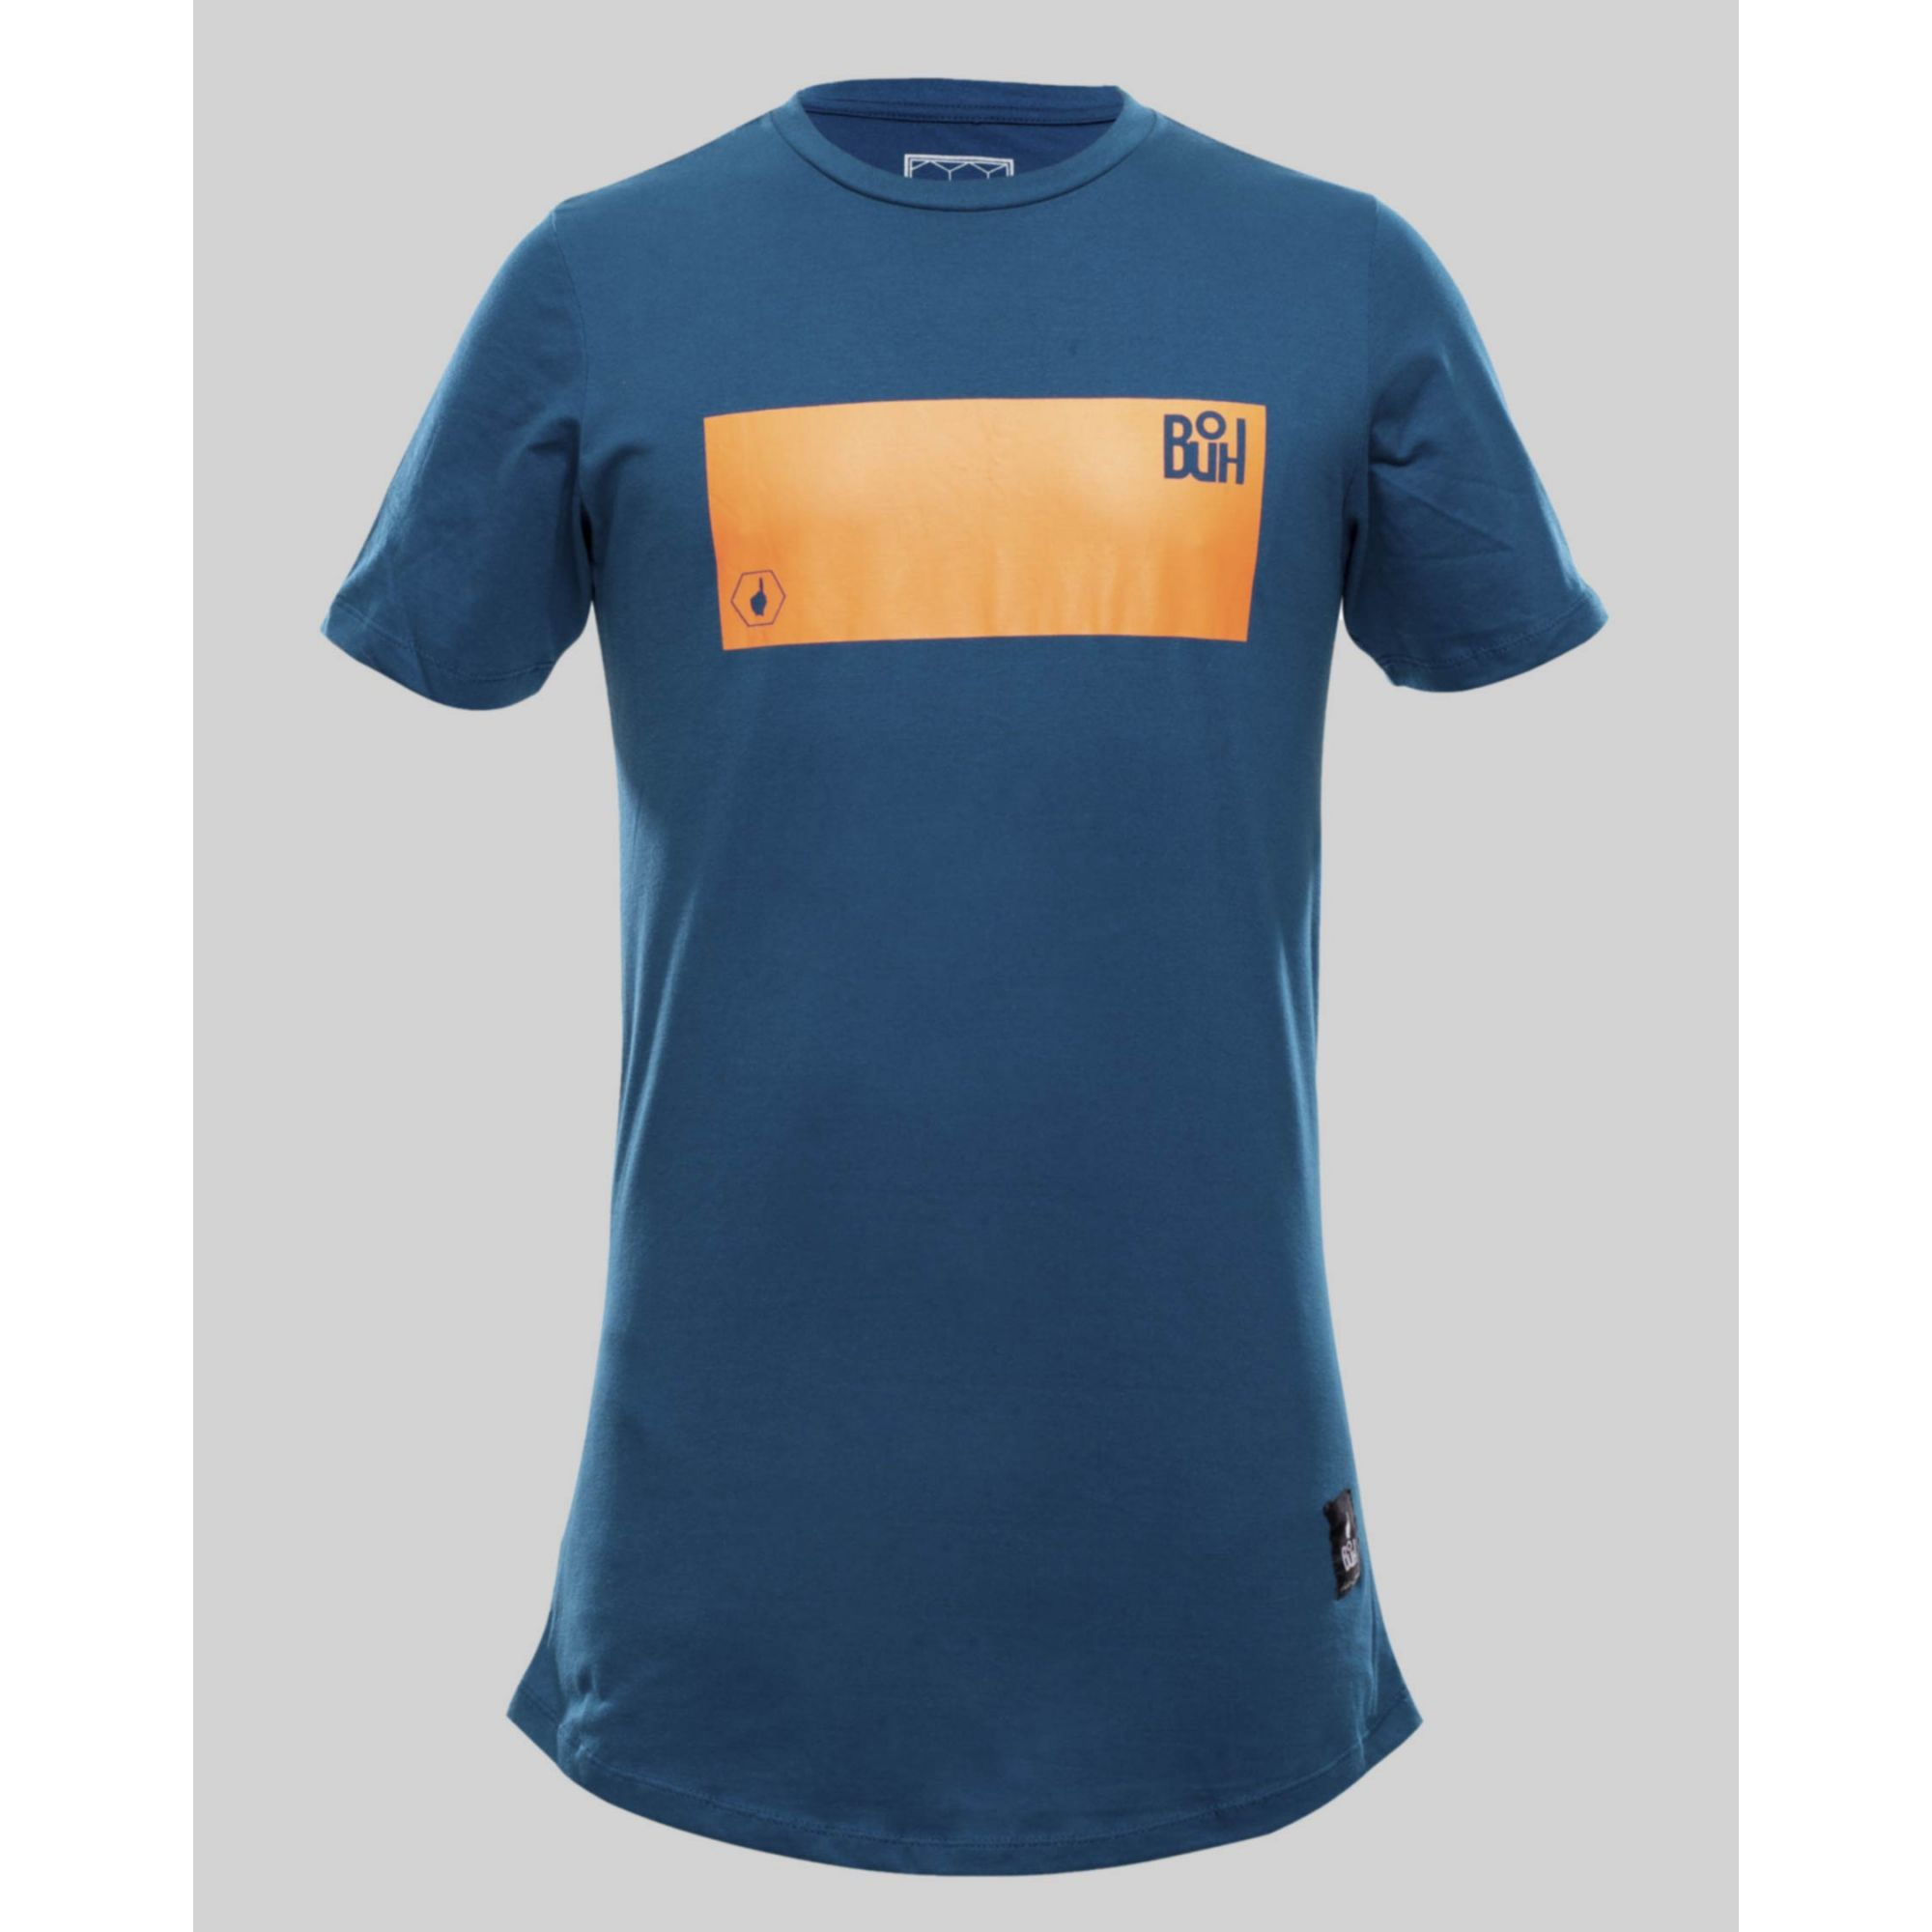 Camiseta Buh Fluor Square Blue